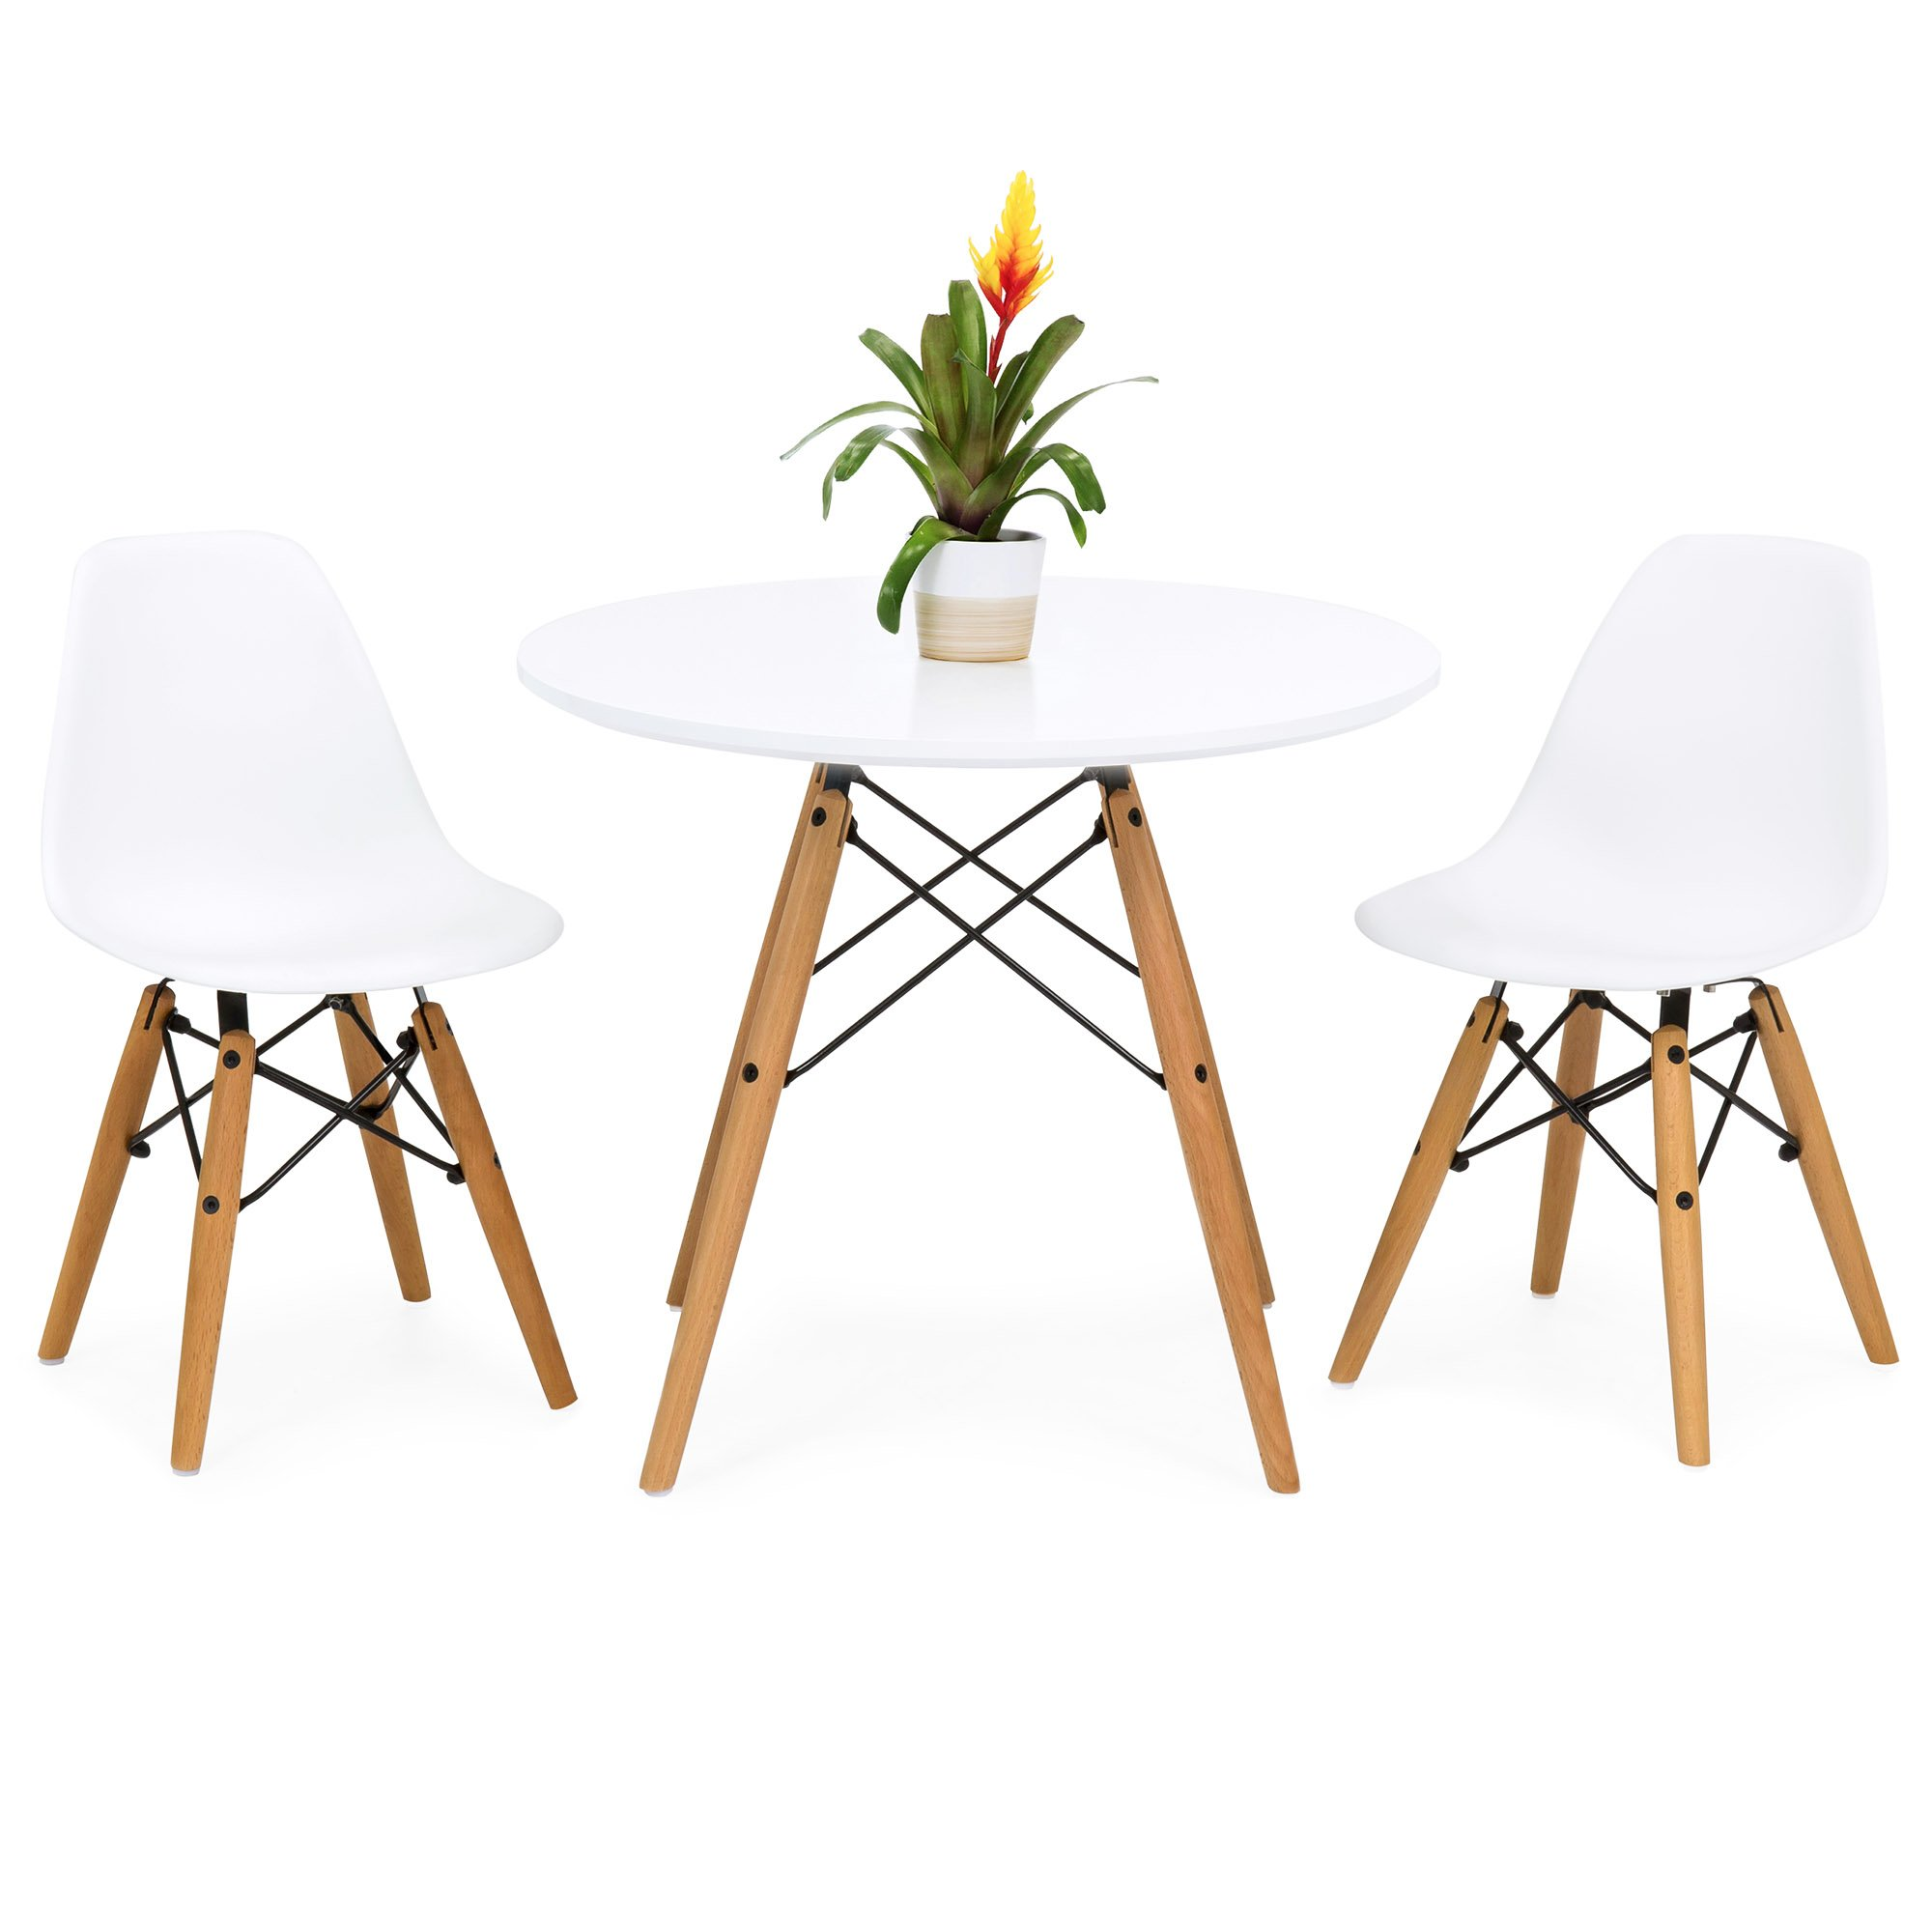 Best Choice Products Kids Mid-Century Modern Dining Room Round Table Set w/ 2 Armless Wood Leg Chairs, White by Best Choice Products